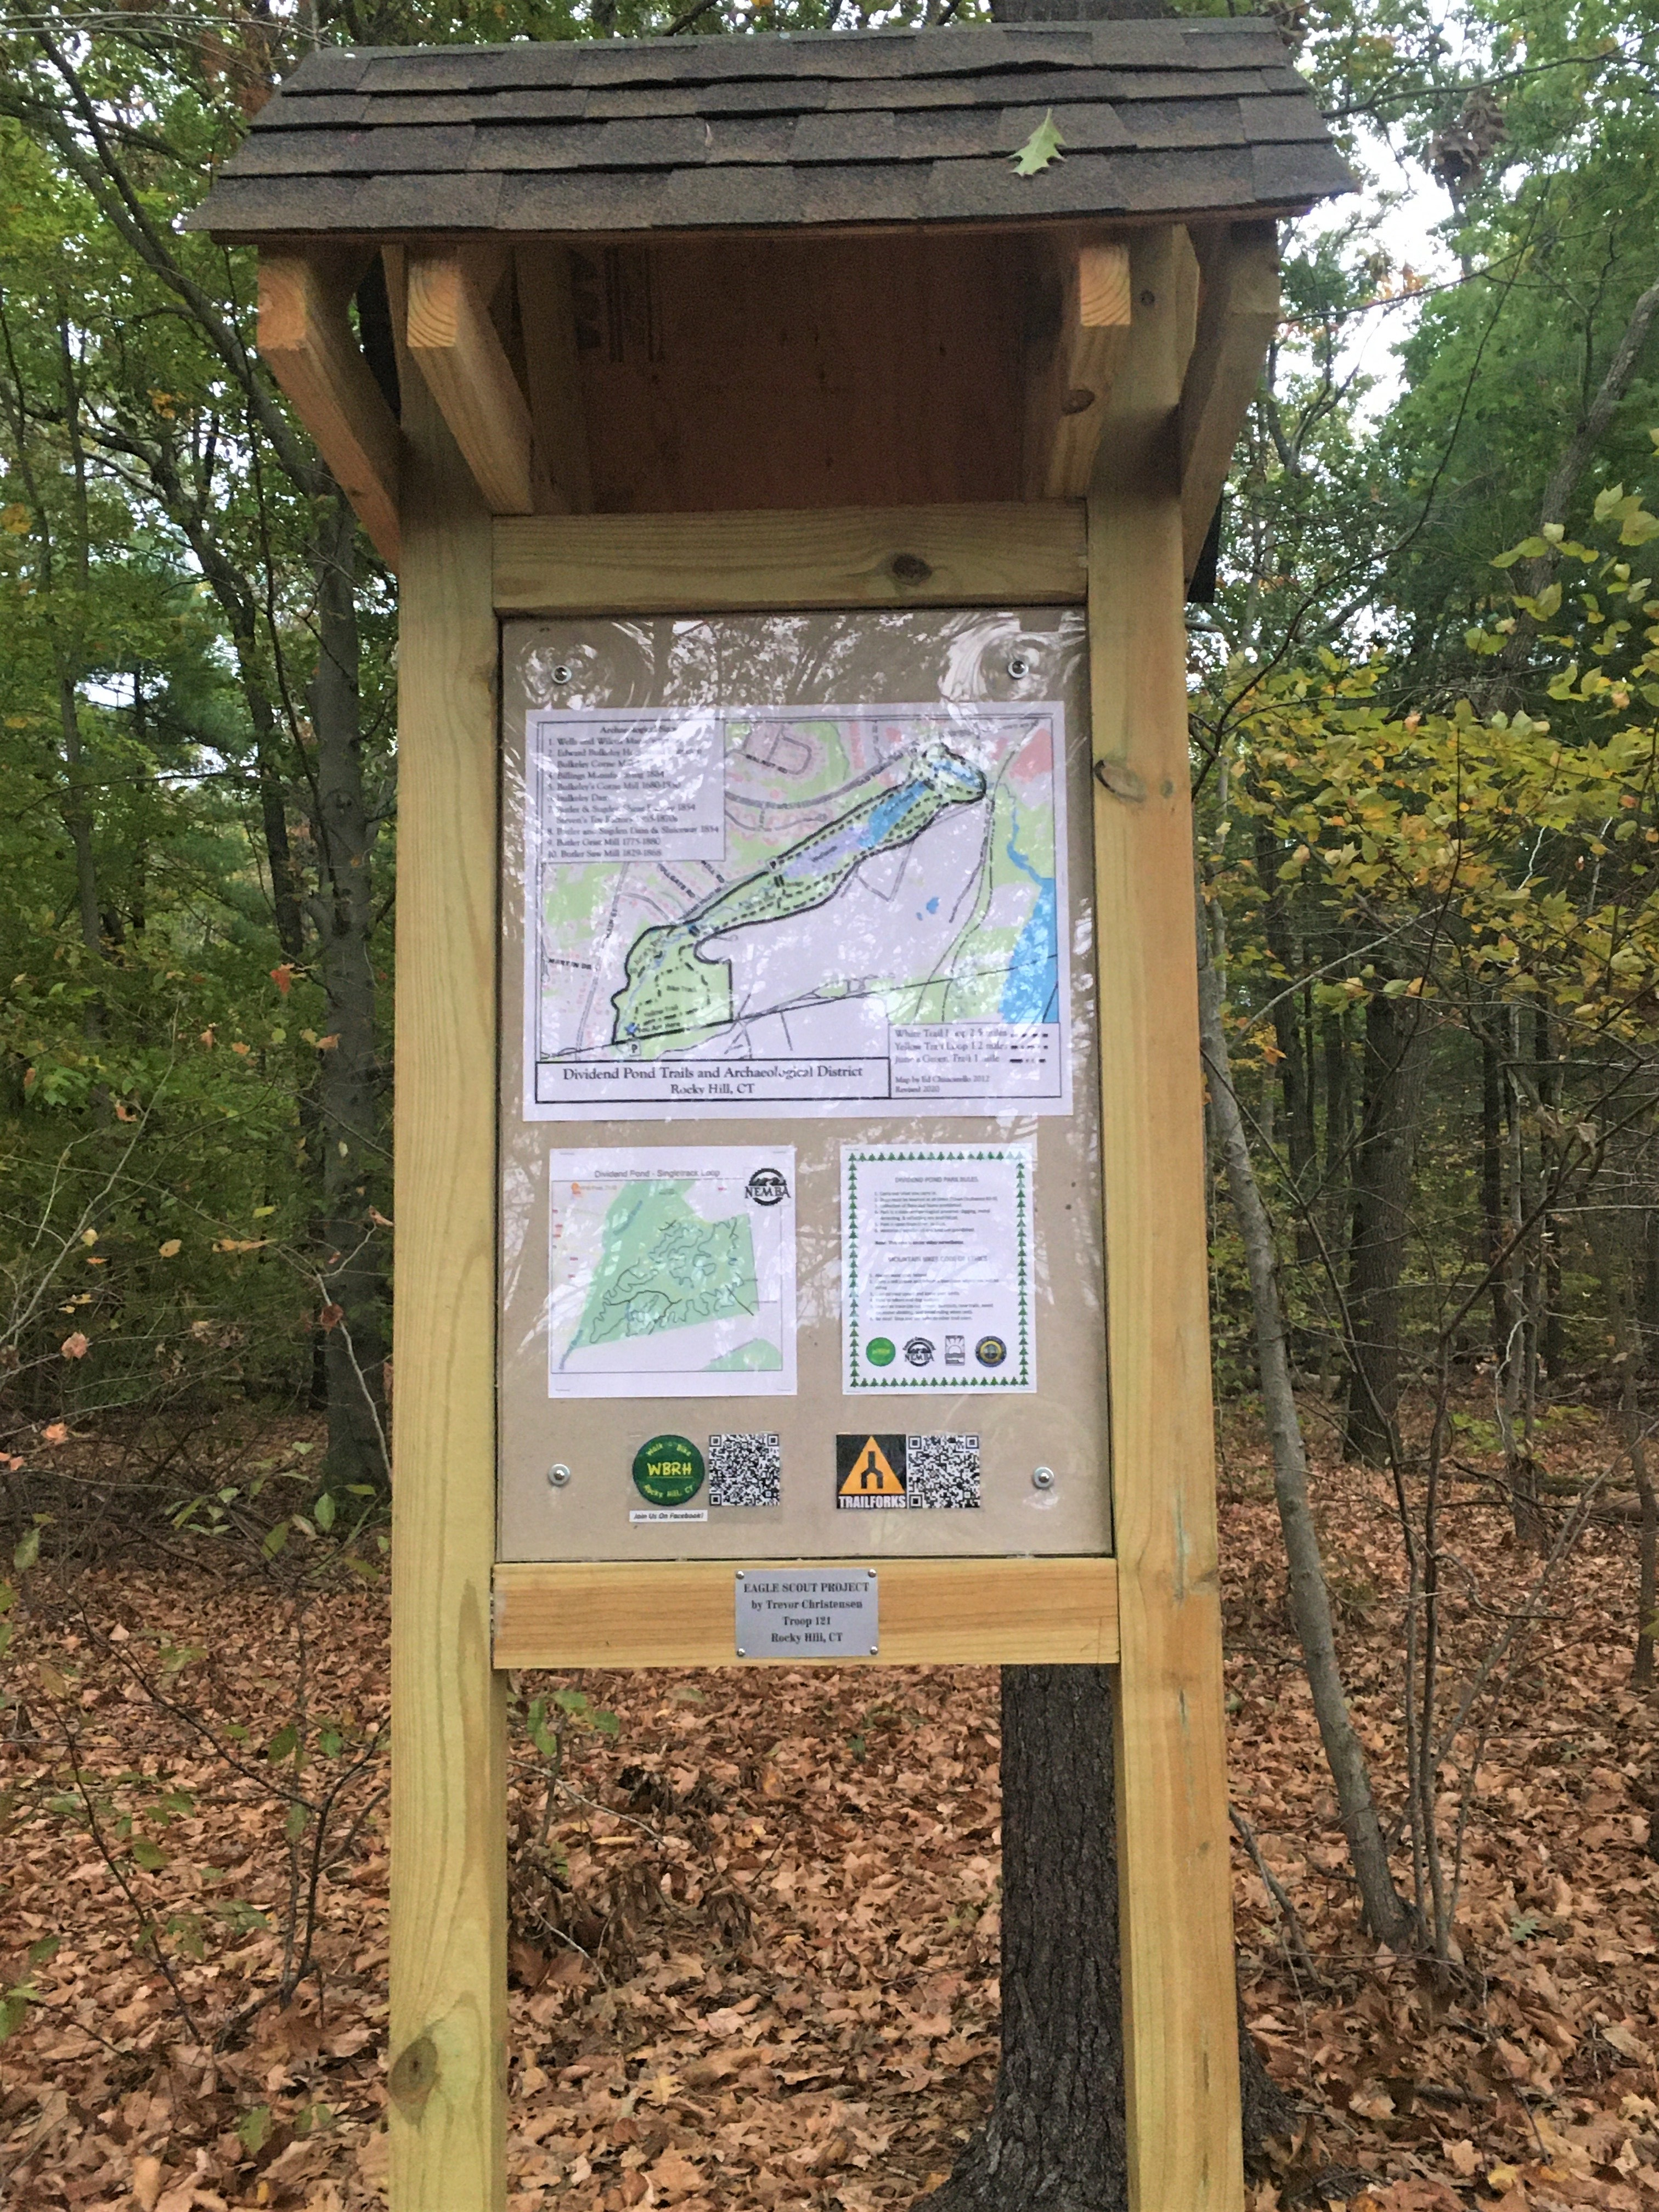 trail map kiosk built by Eagle Scouts